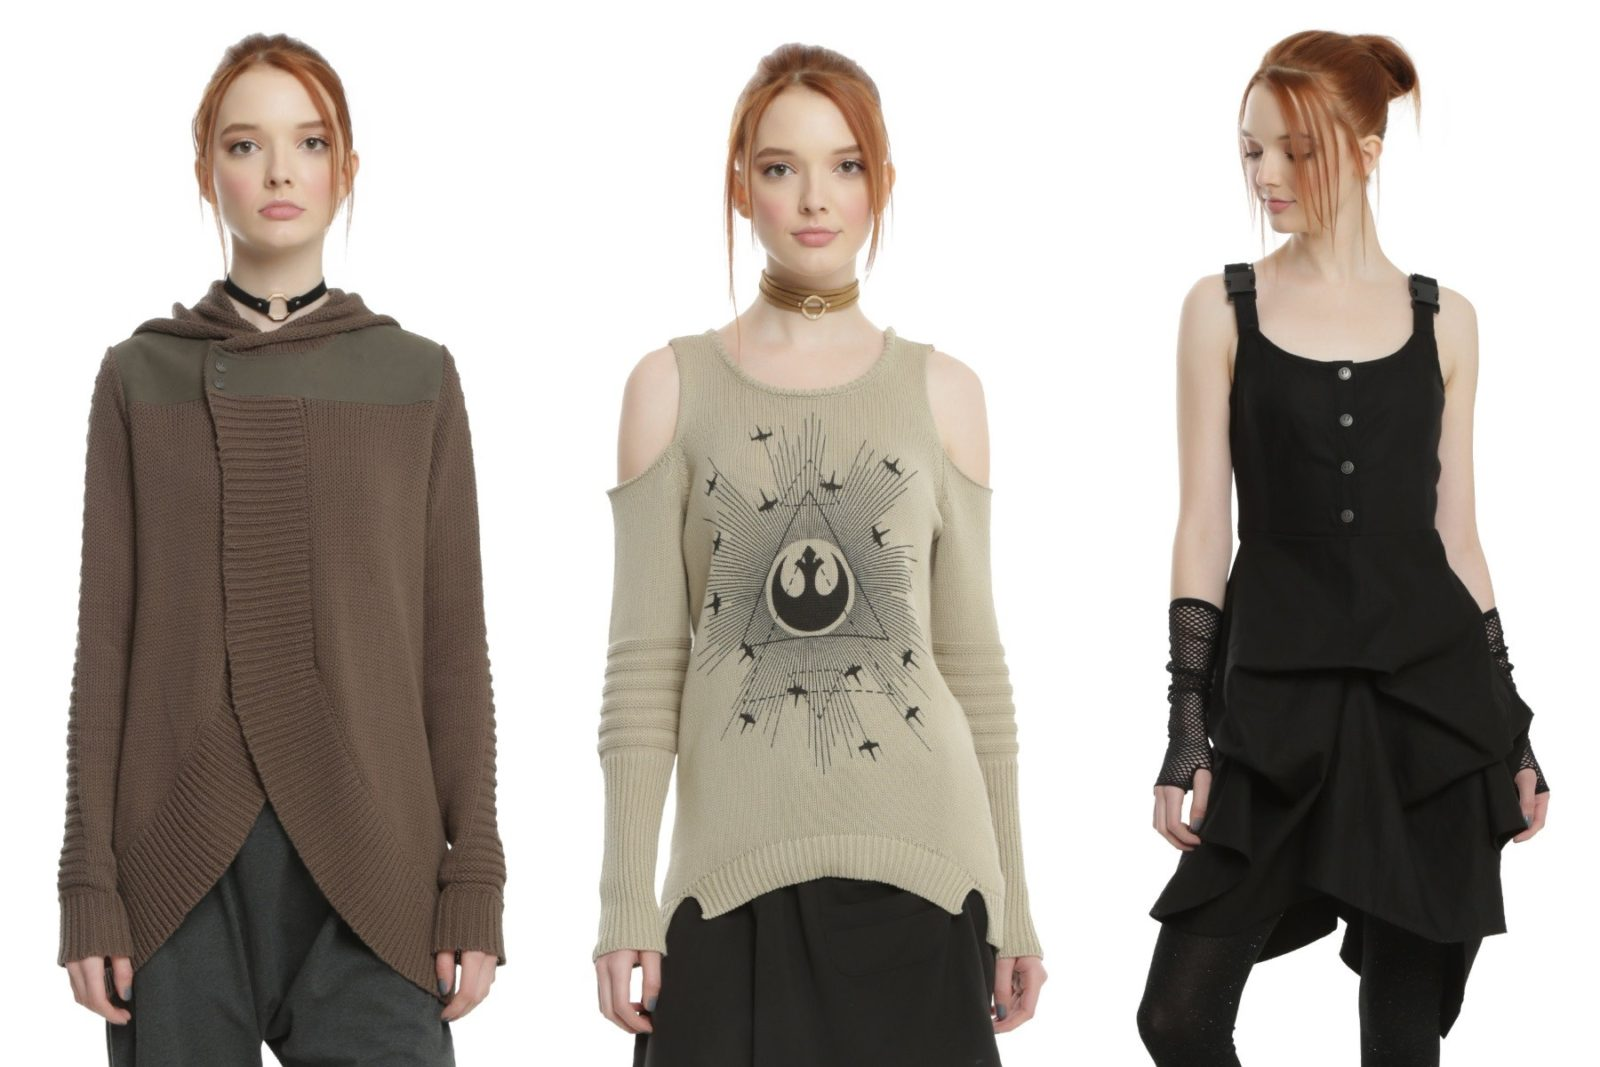 New Rogue One collection at Hot Topic!